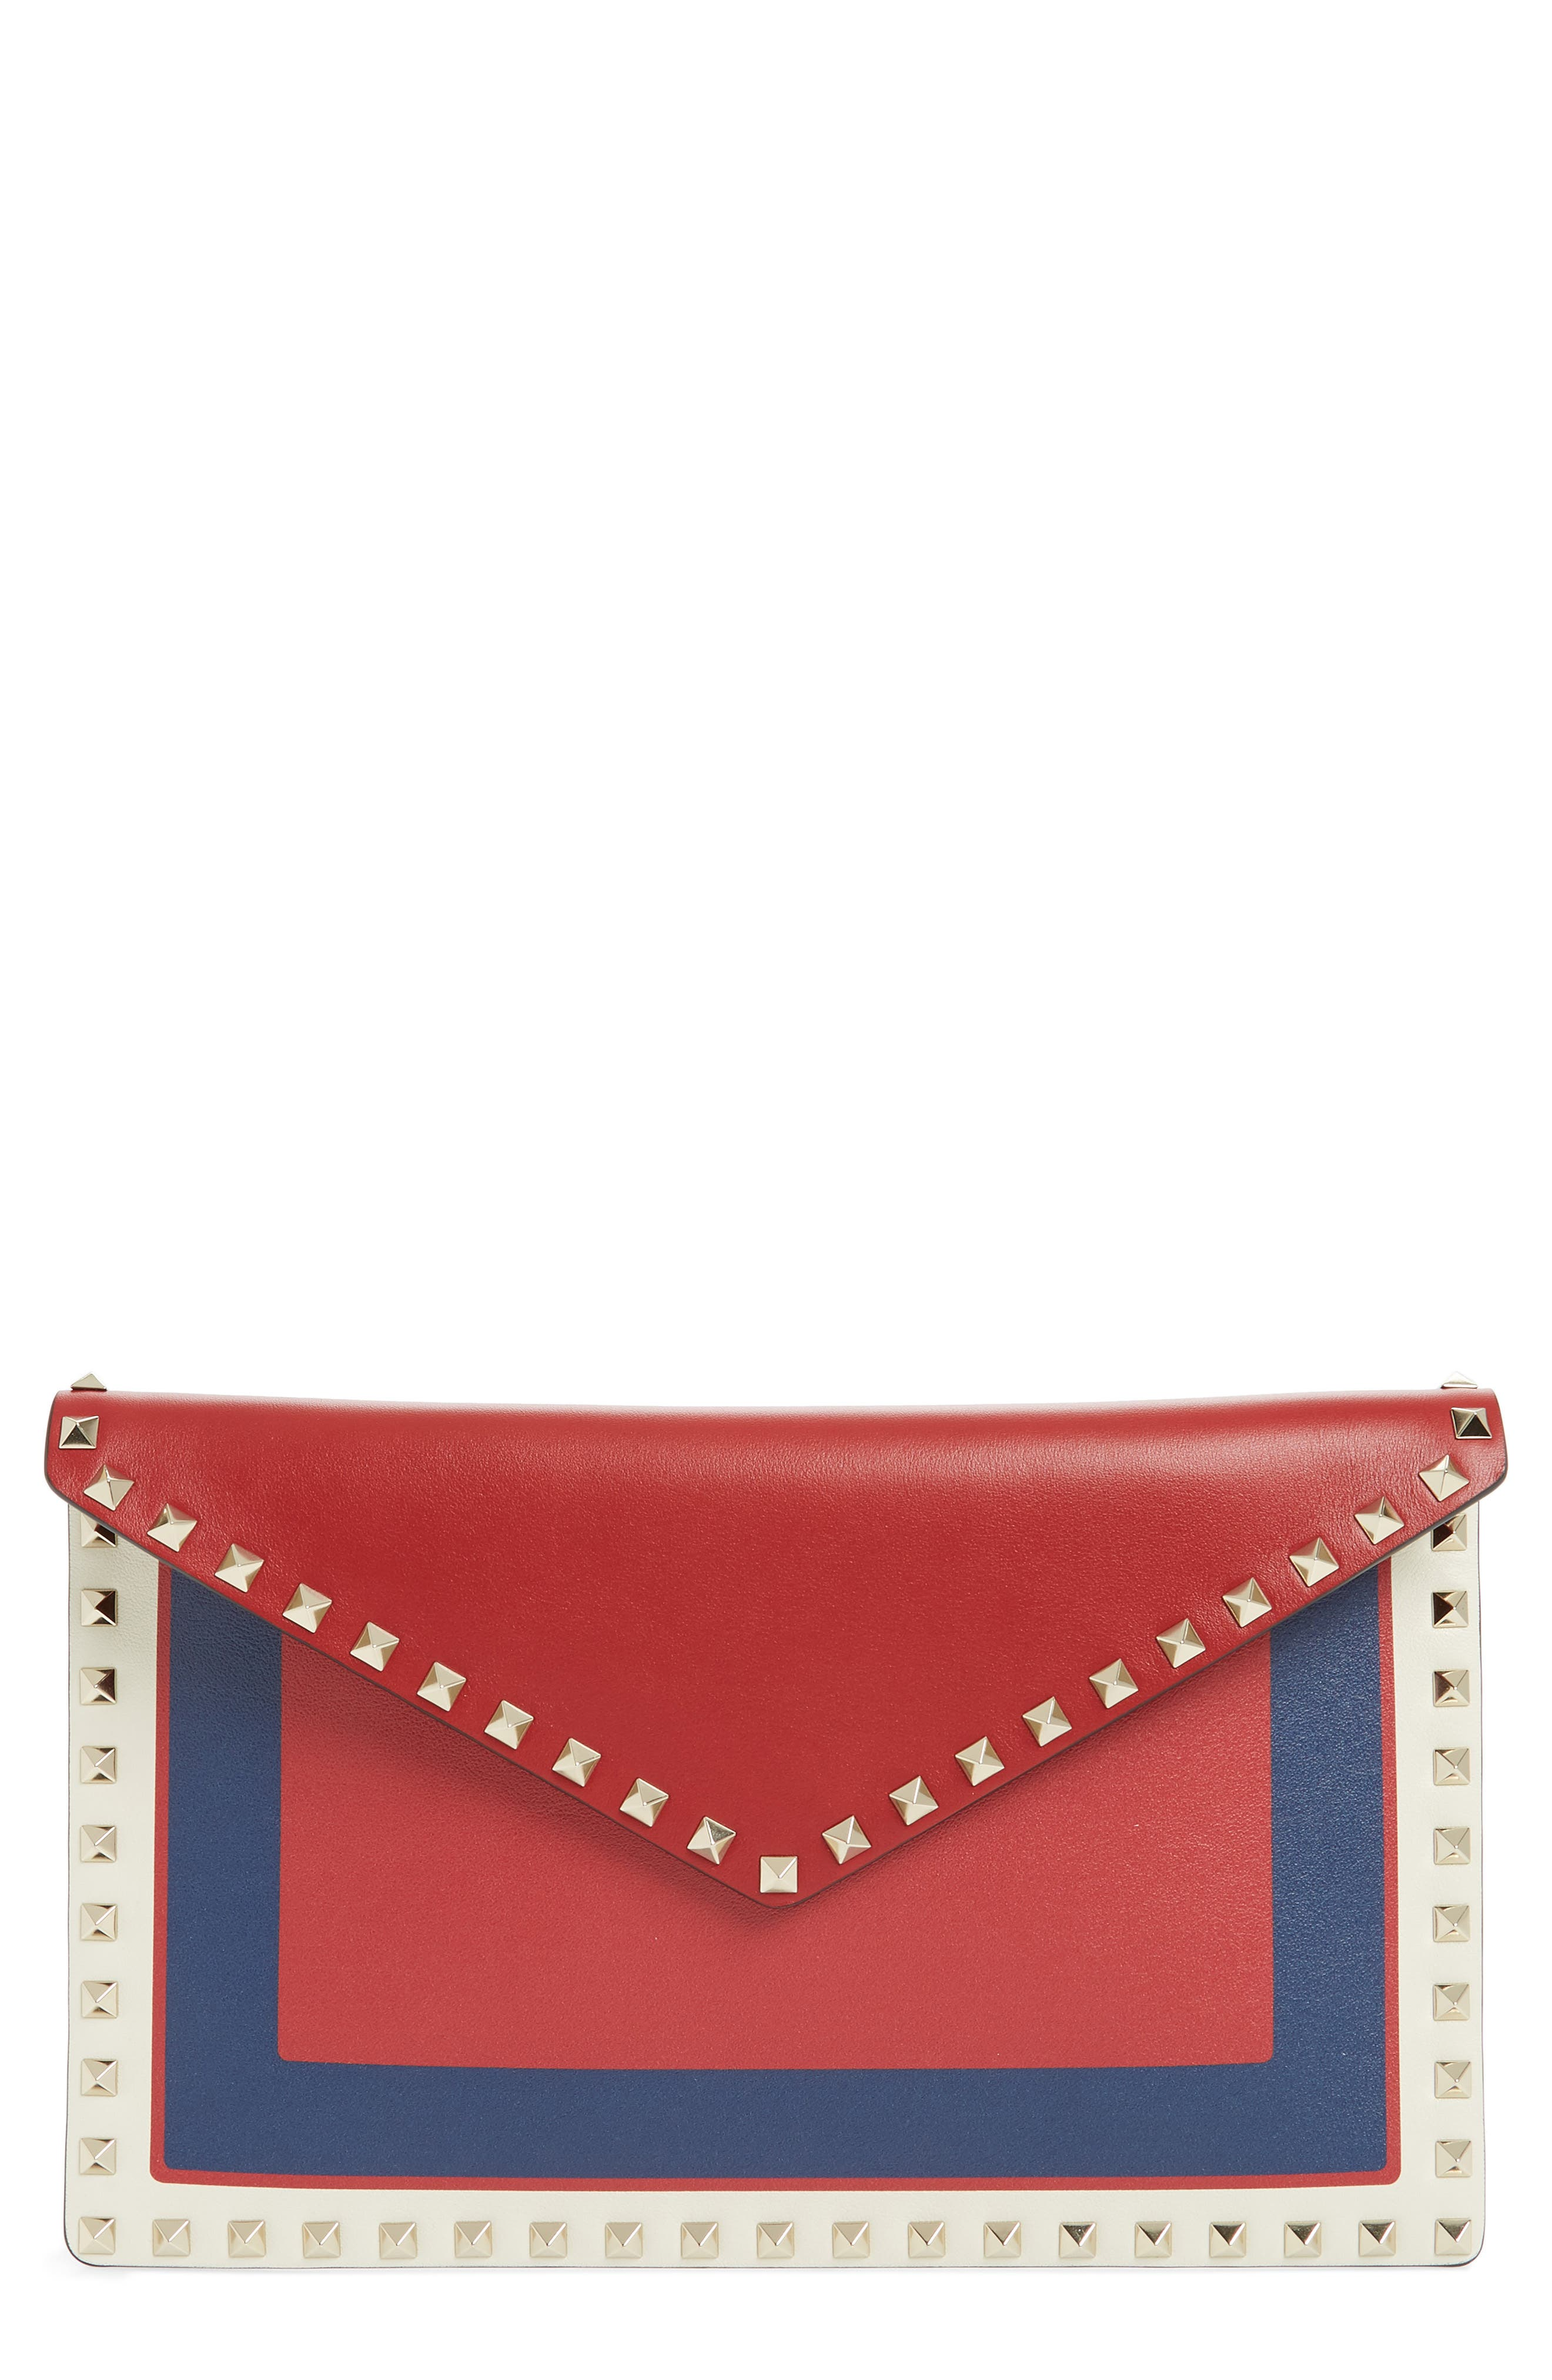 VALENTINO GARAVANI, Large Rockstud Calfskin Leather Envelope Pouch, Main thumbnail 1, color, PURE BLUE/ LIGHT IVORY/ ROSSO